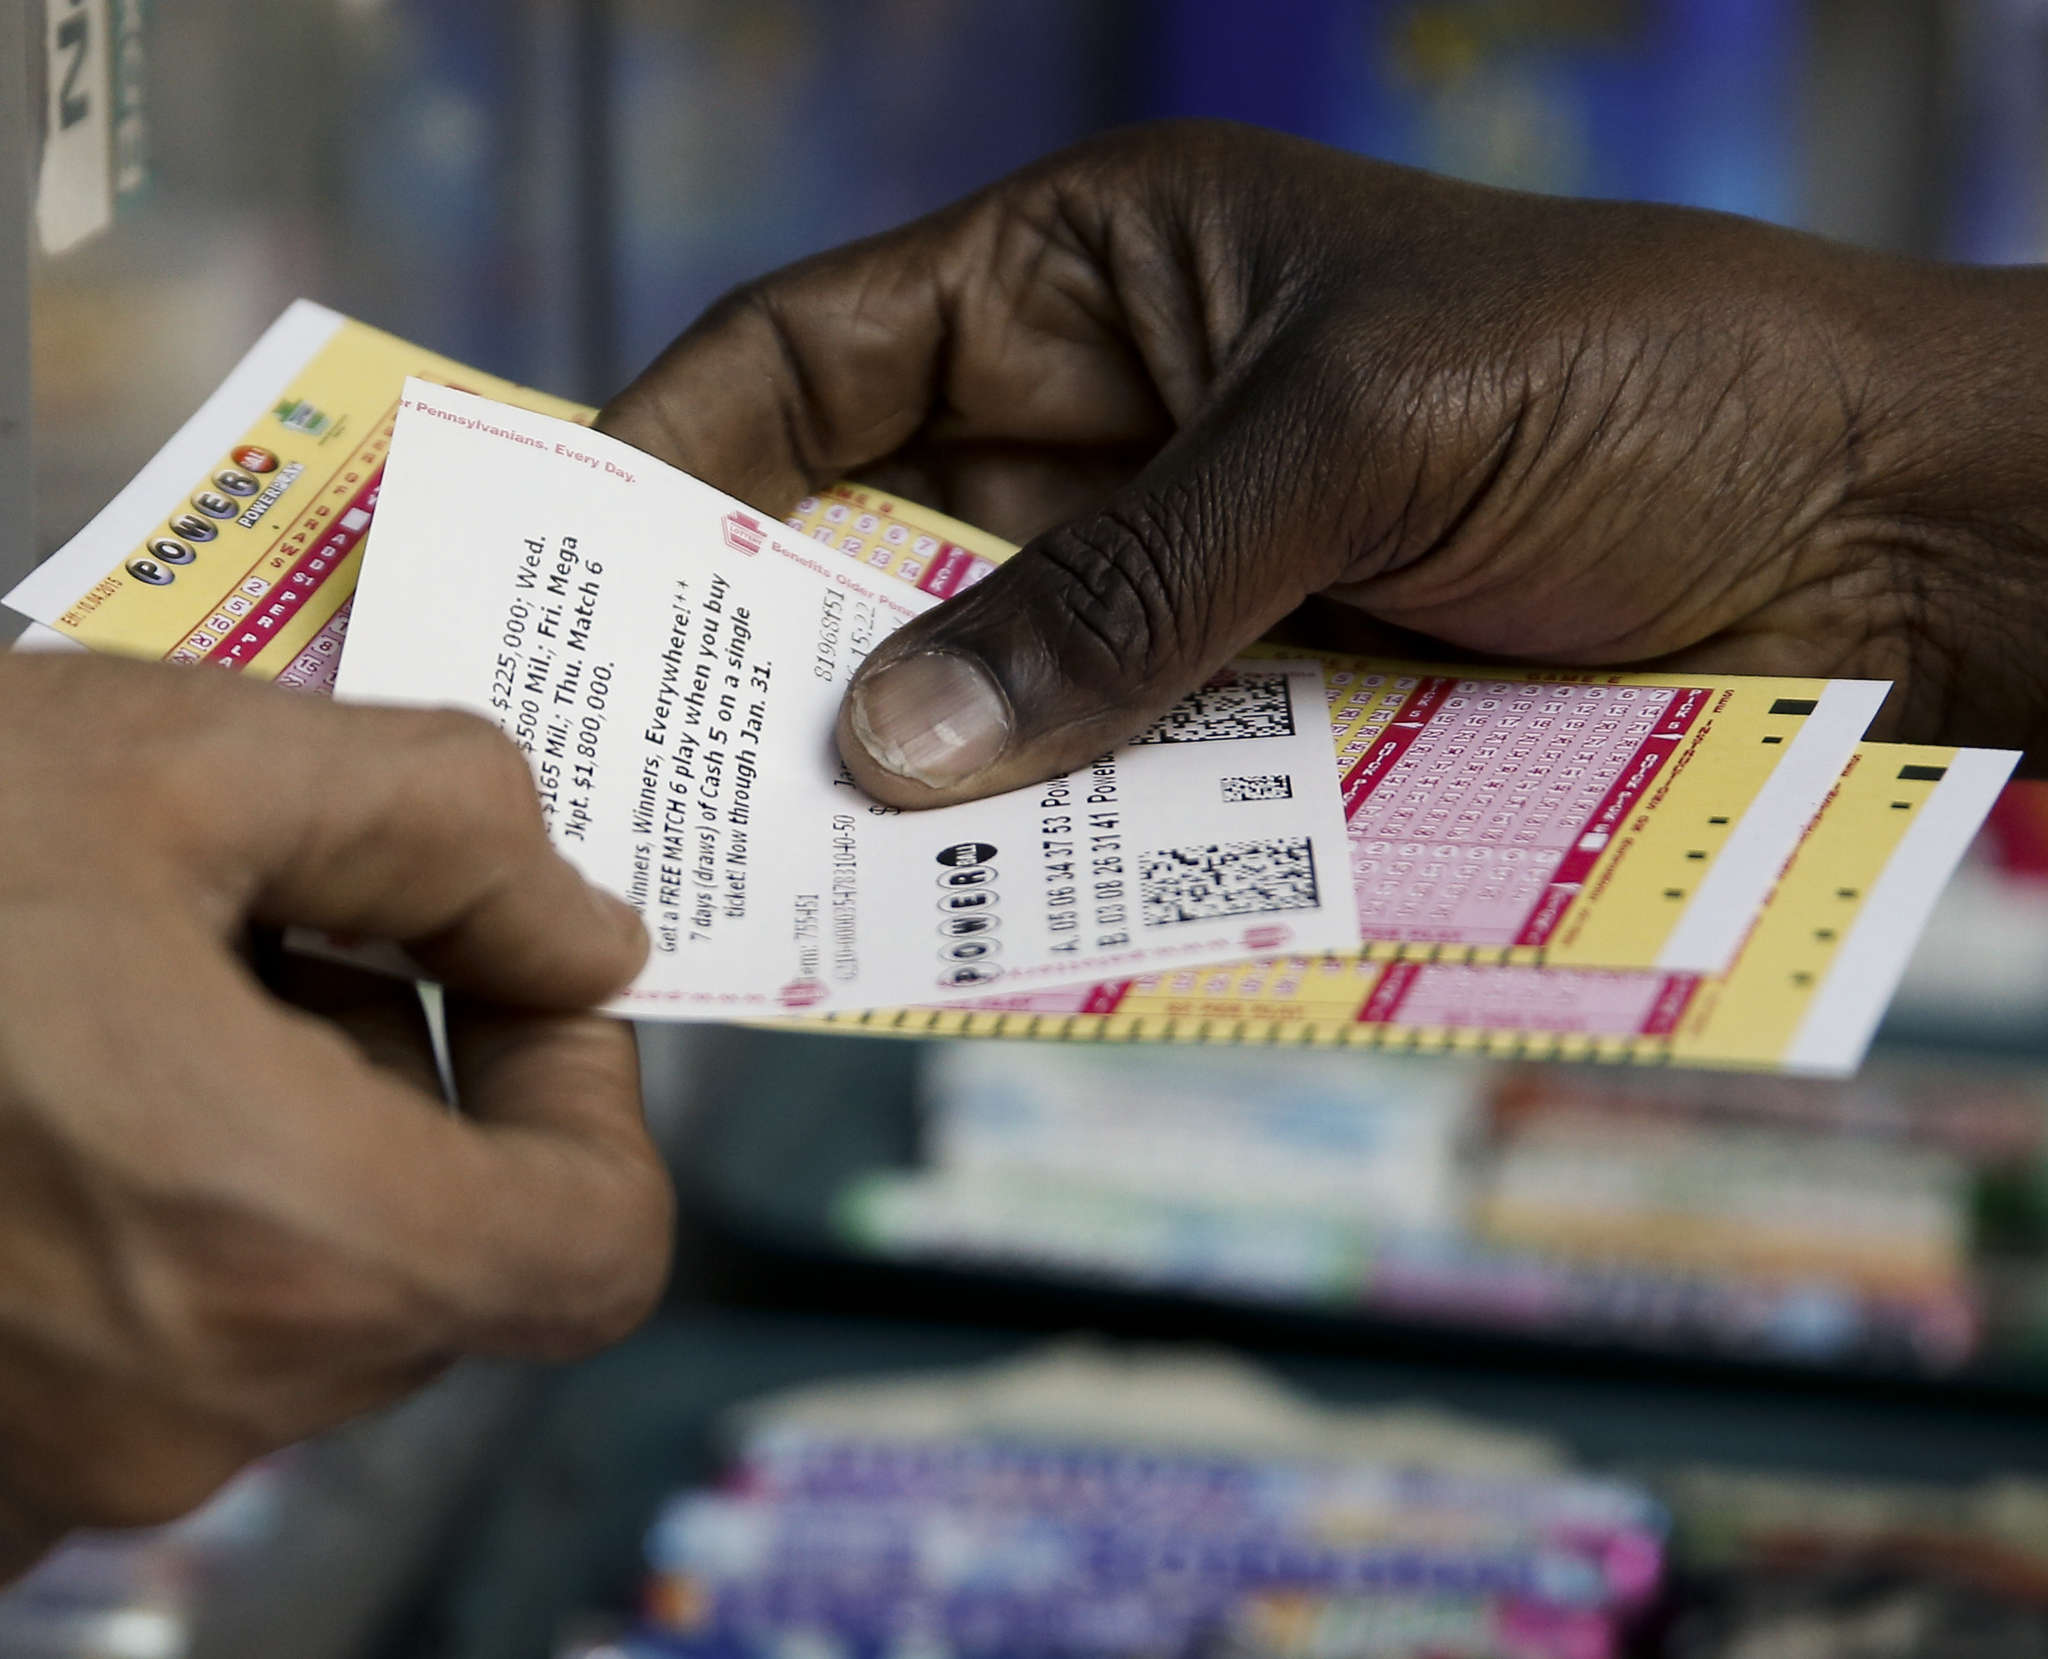 The jackpot for Wednesday night´s Powerball drawing is nearing $1.5 billion, spurring discussions on investment.